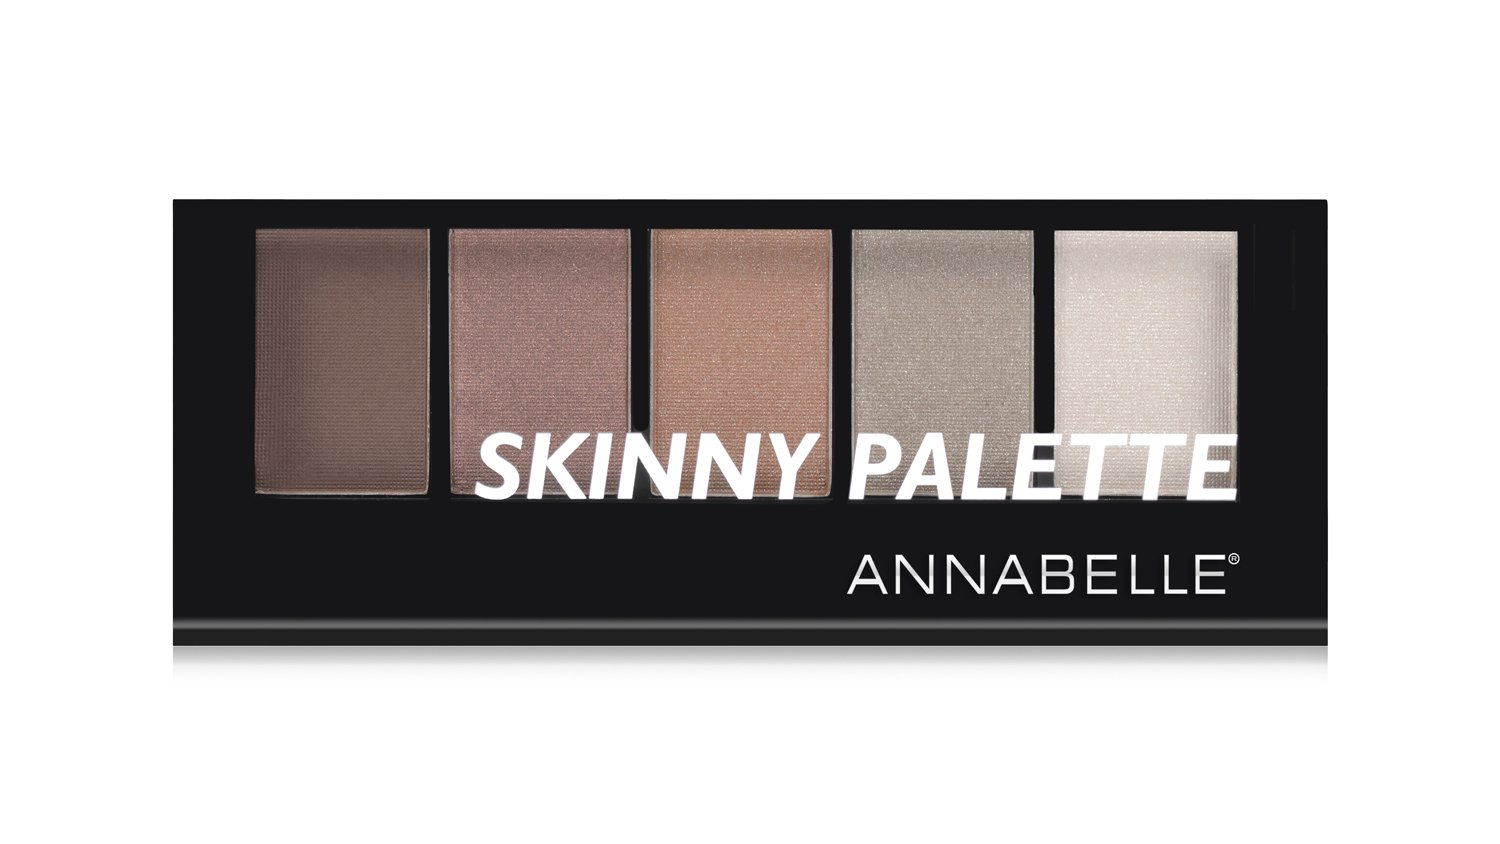 Annabelle Skinny Eyeshadow Palette - New Eve Goldy Browns, 7.65 g Groupe Marcelle Inc.